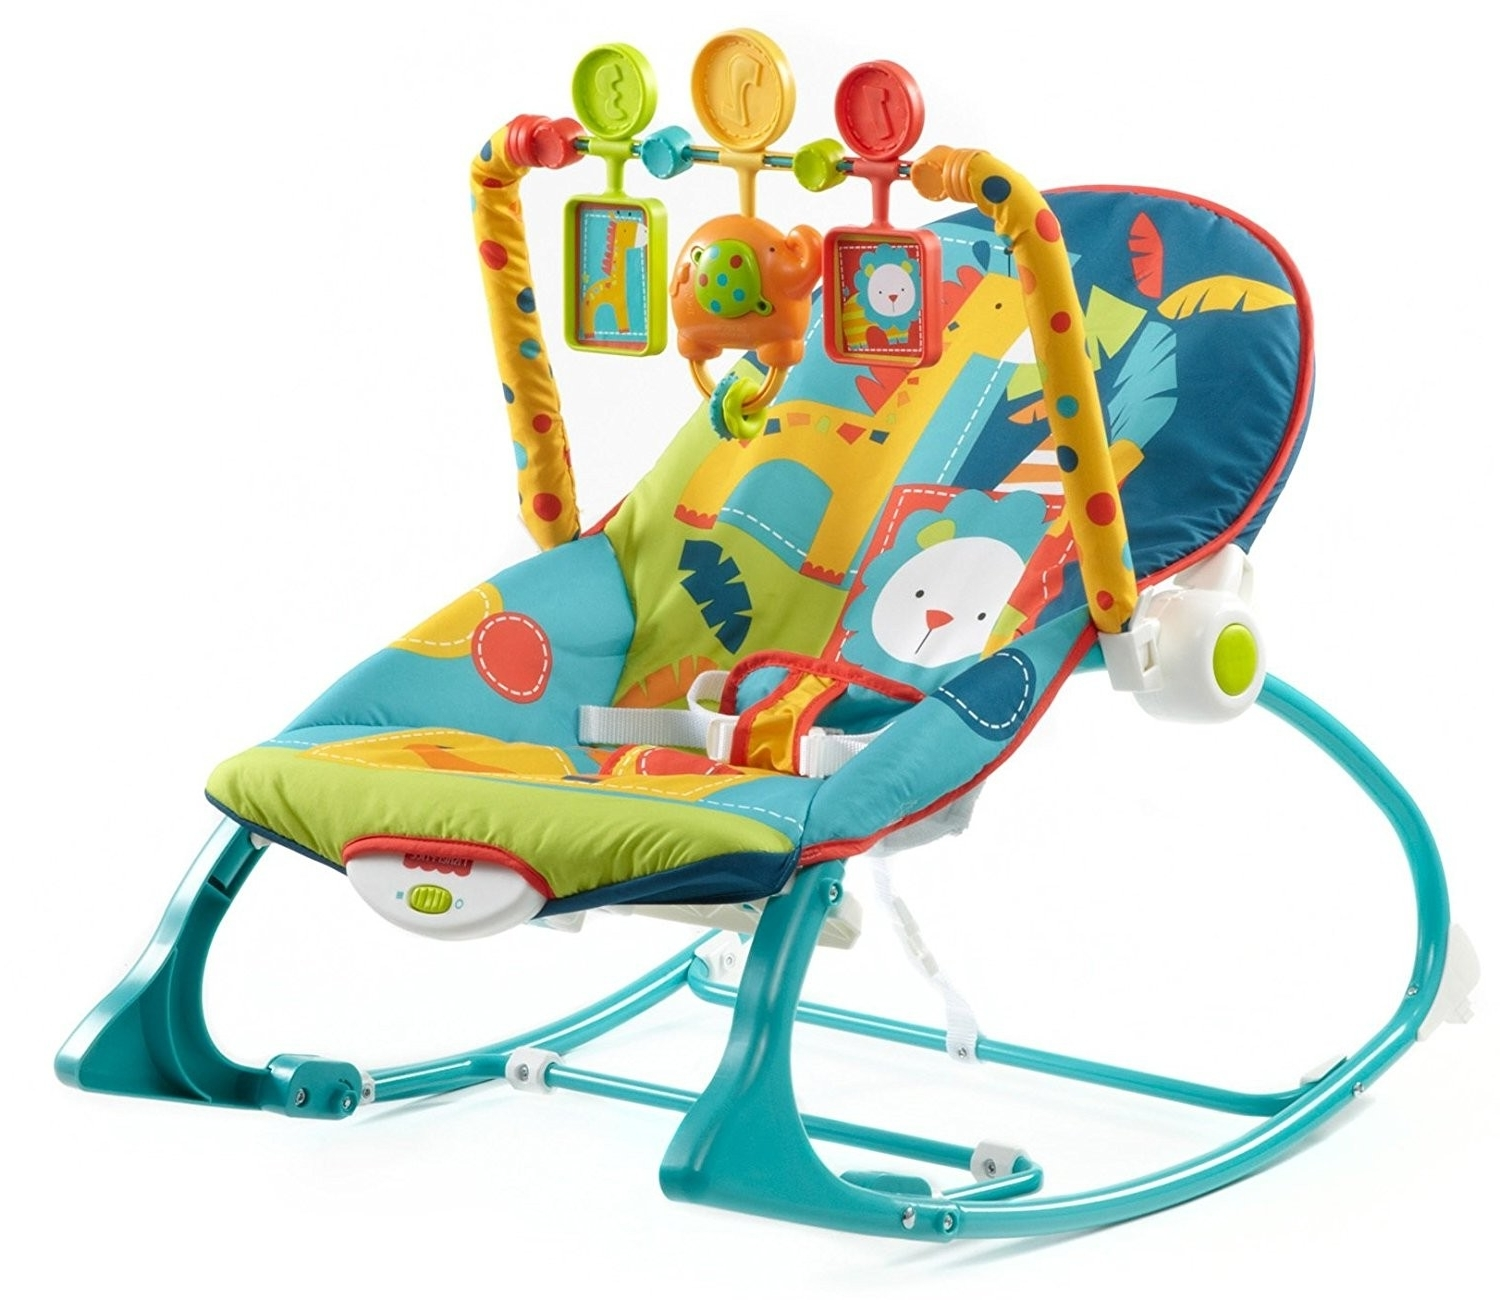 Rocking Chair For Baby – Torino2017 Intended For Most Up To Date Rocking Chairs For Babies (View 11 of 15)